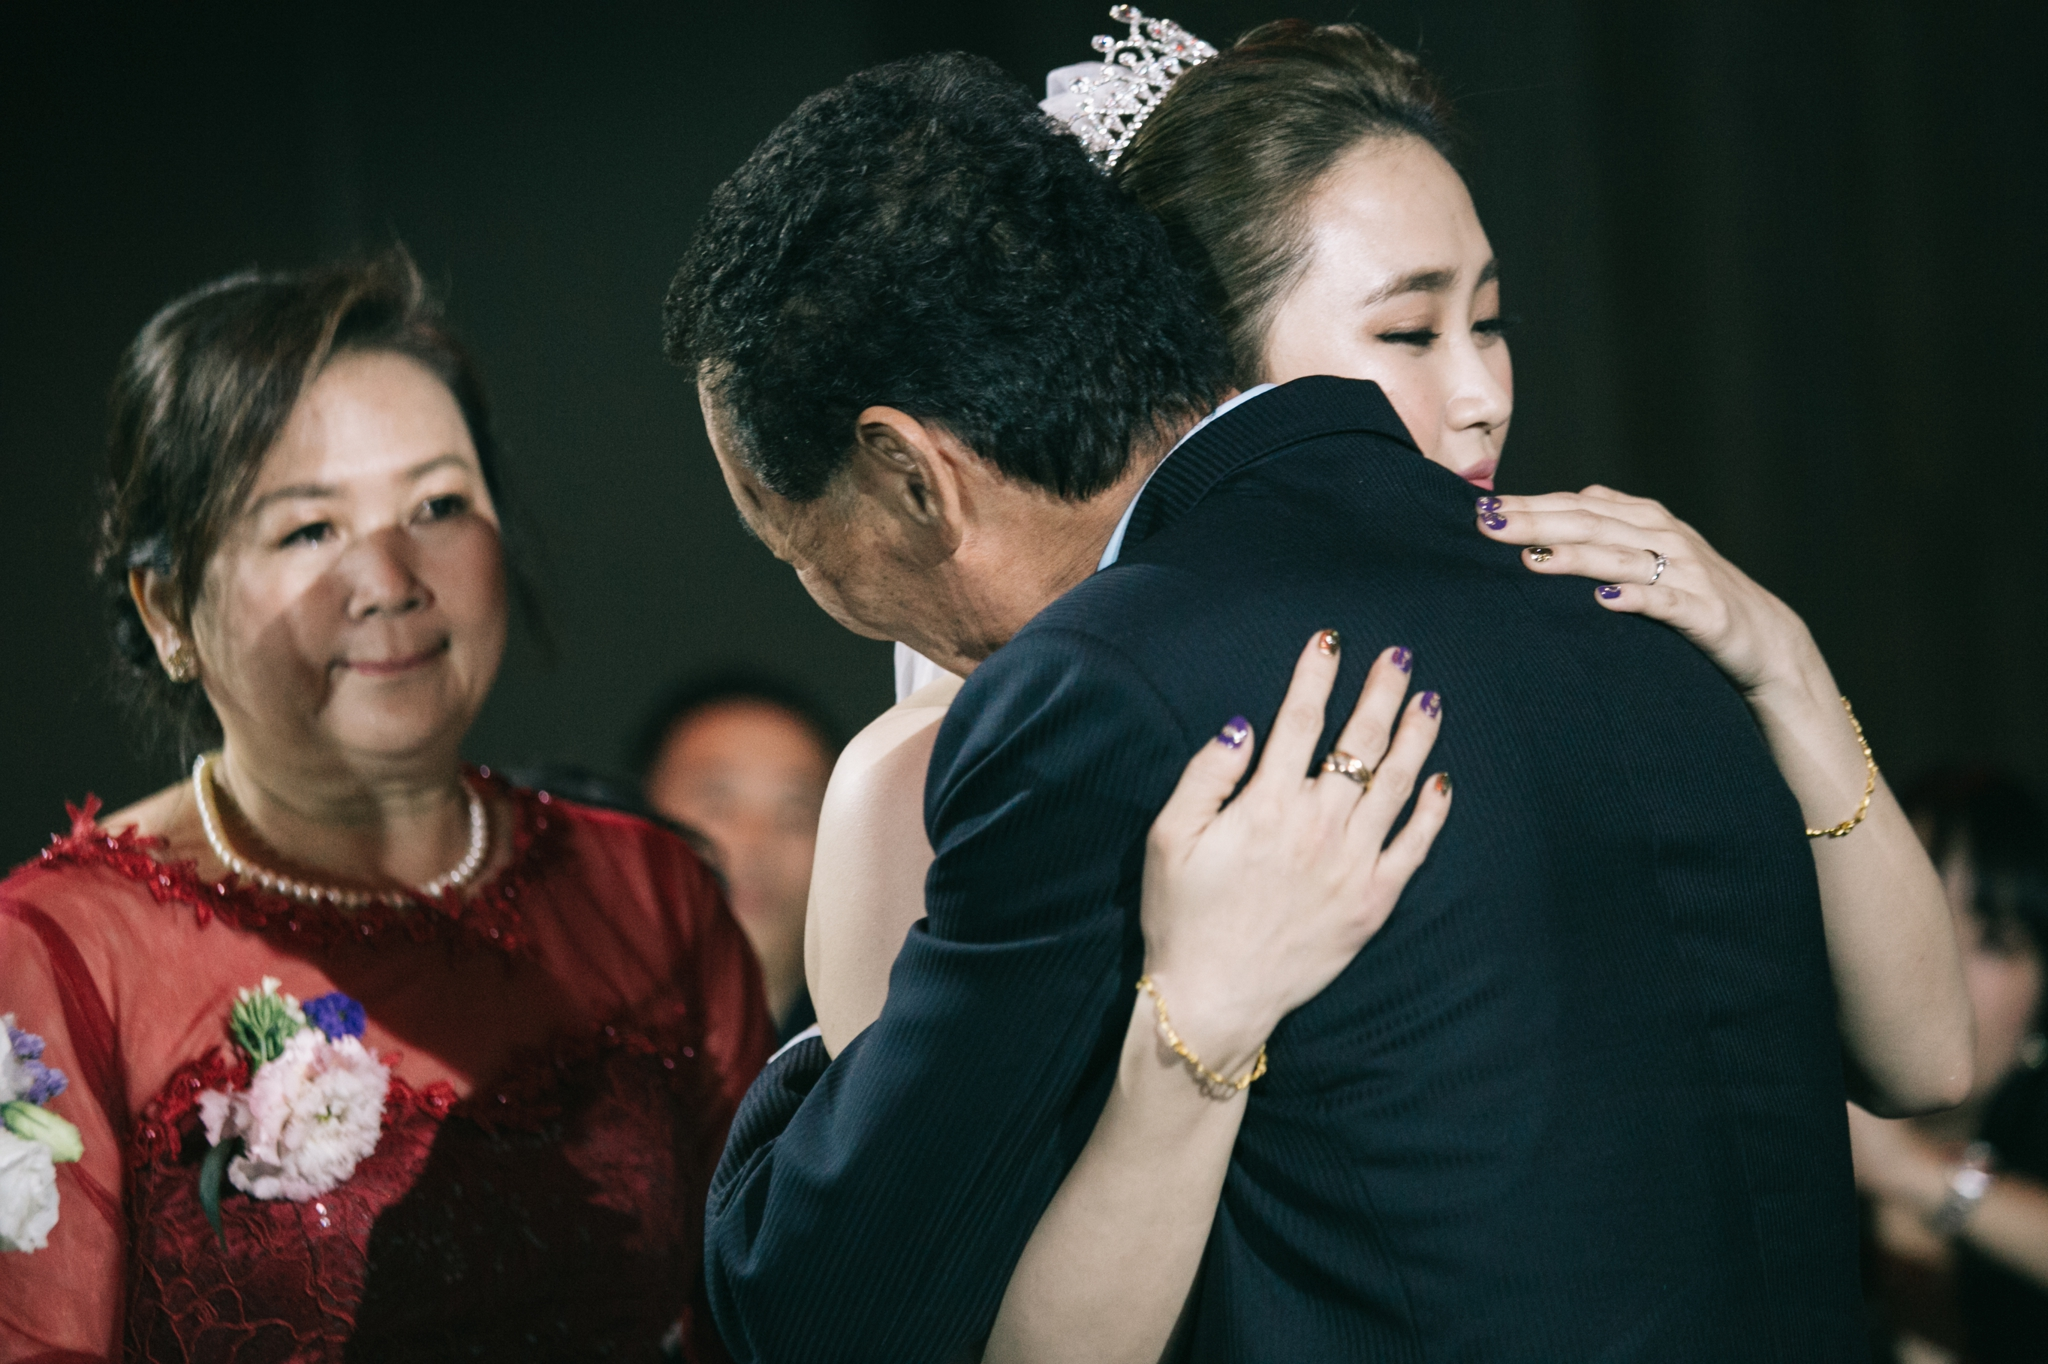 Keddy+Richard-wedding-新莊頤品飯店-180.jpg